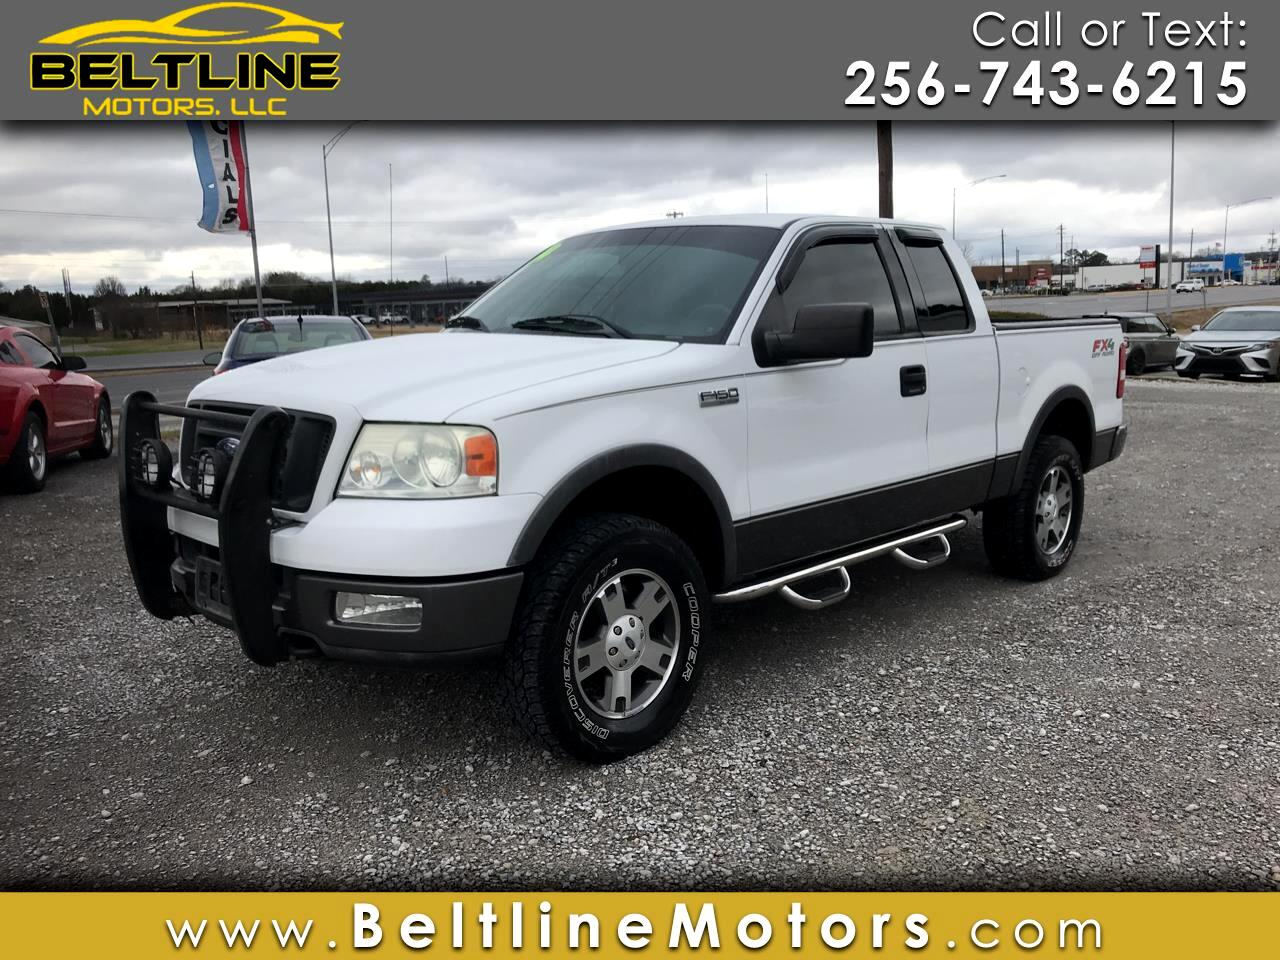 2004 Ford F-150 Supercab 145